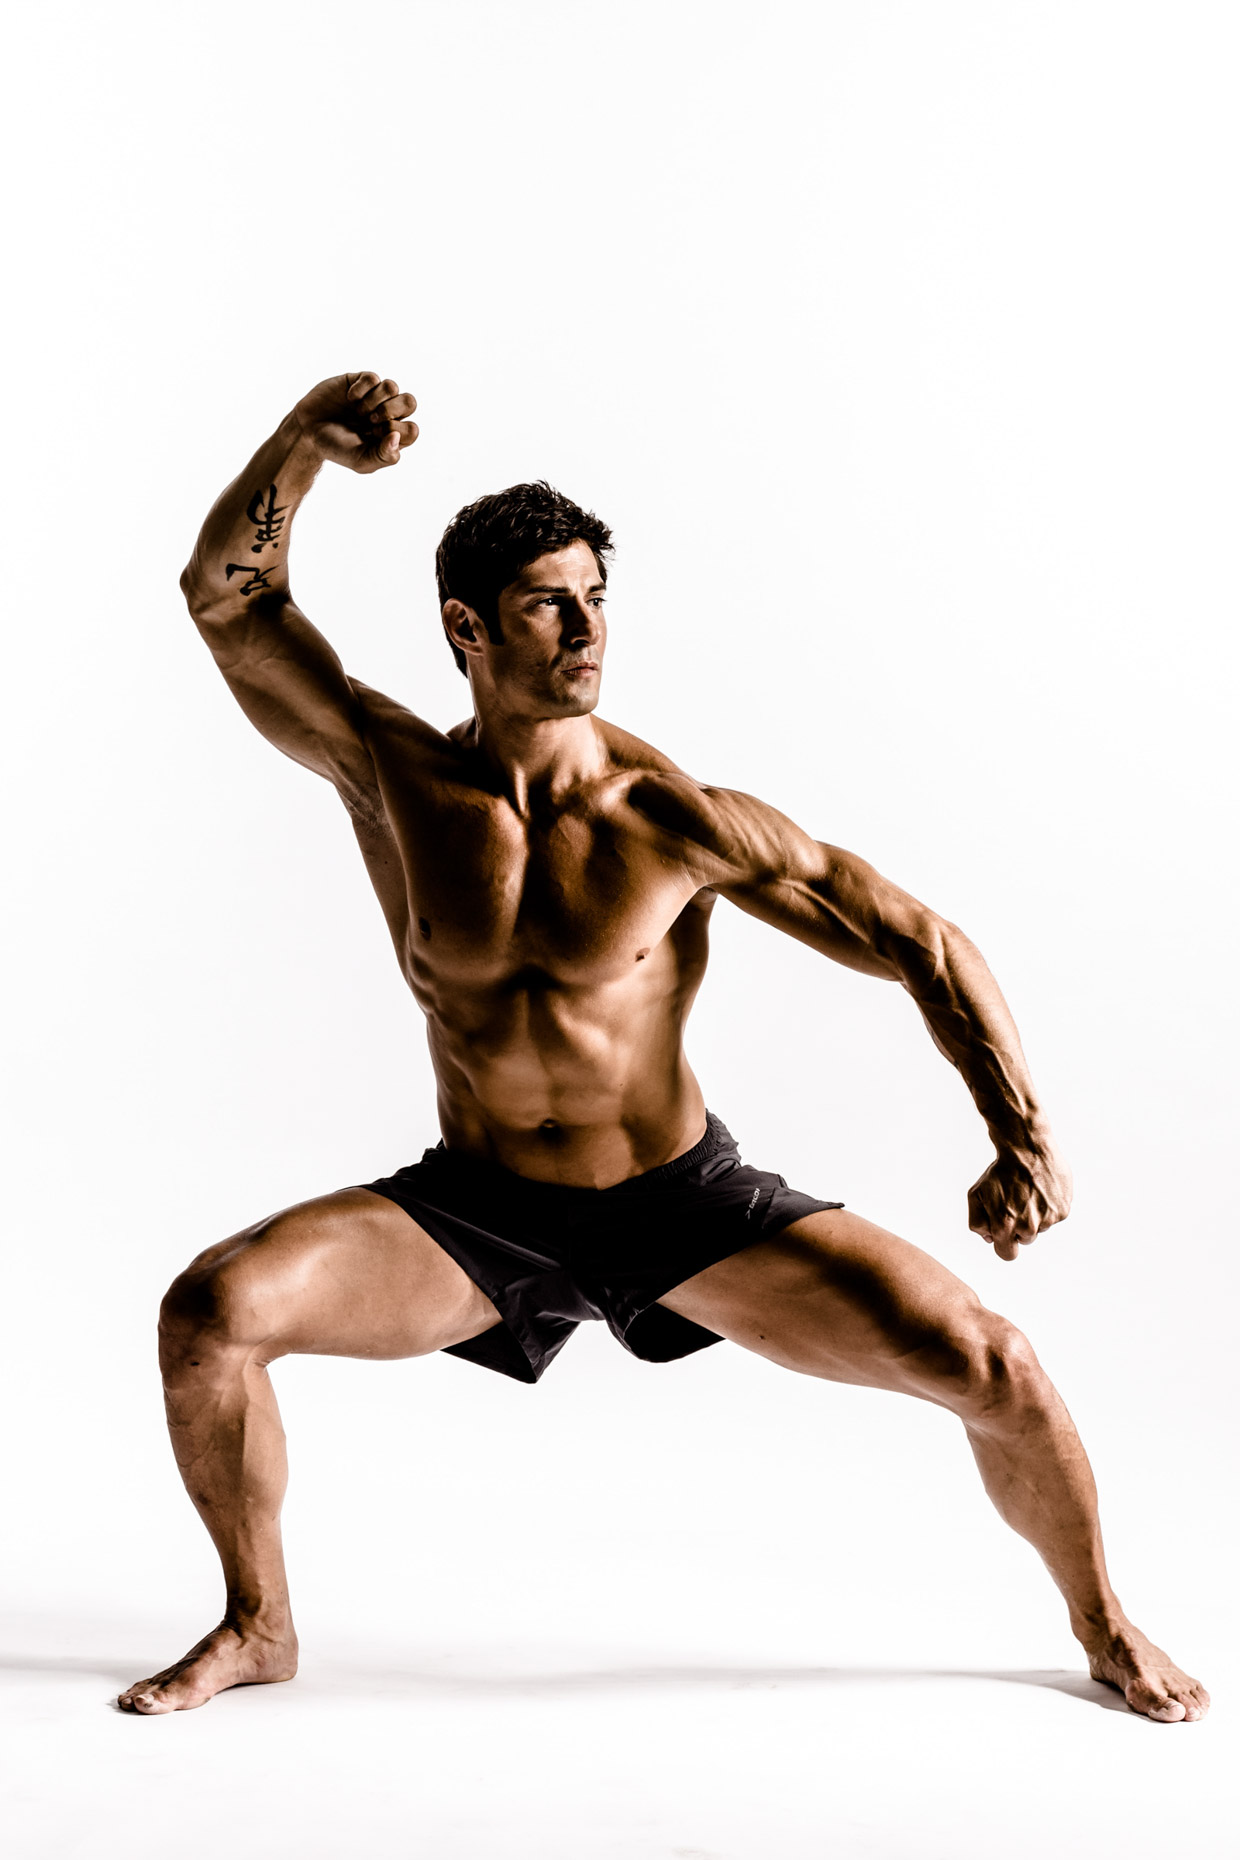 tranier Rudy Reyes by dramatic fitness photographer Andy Batt